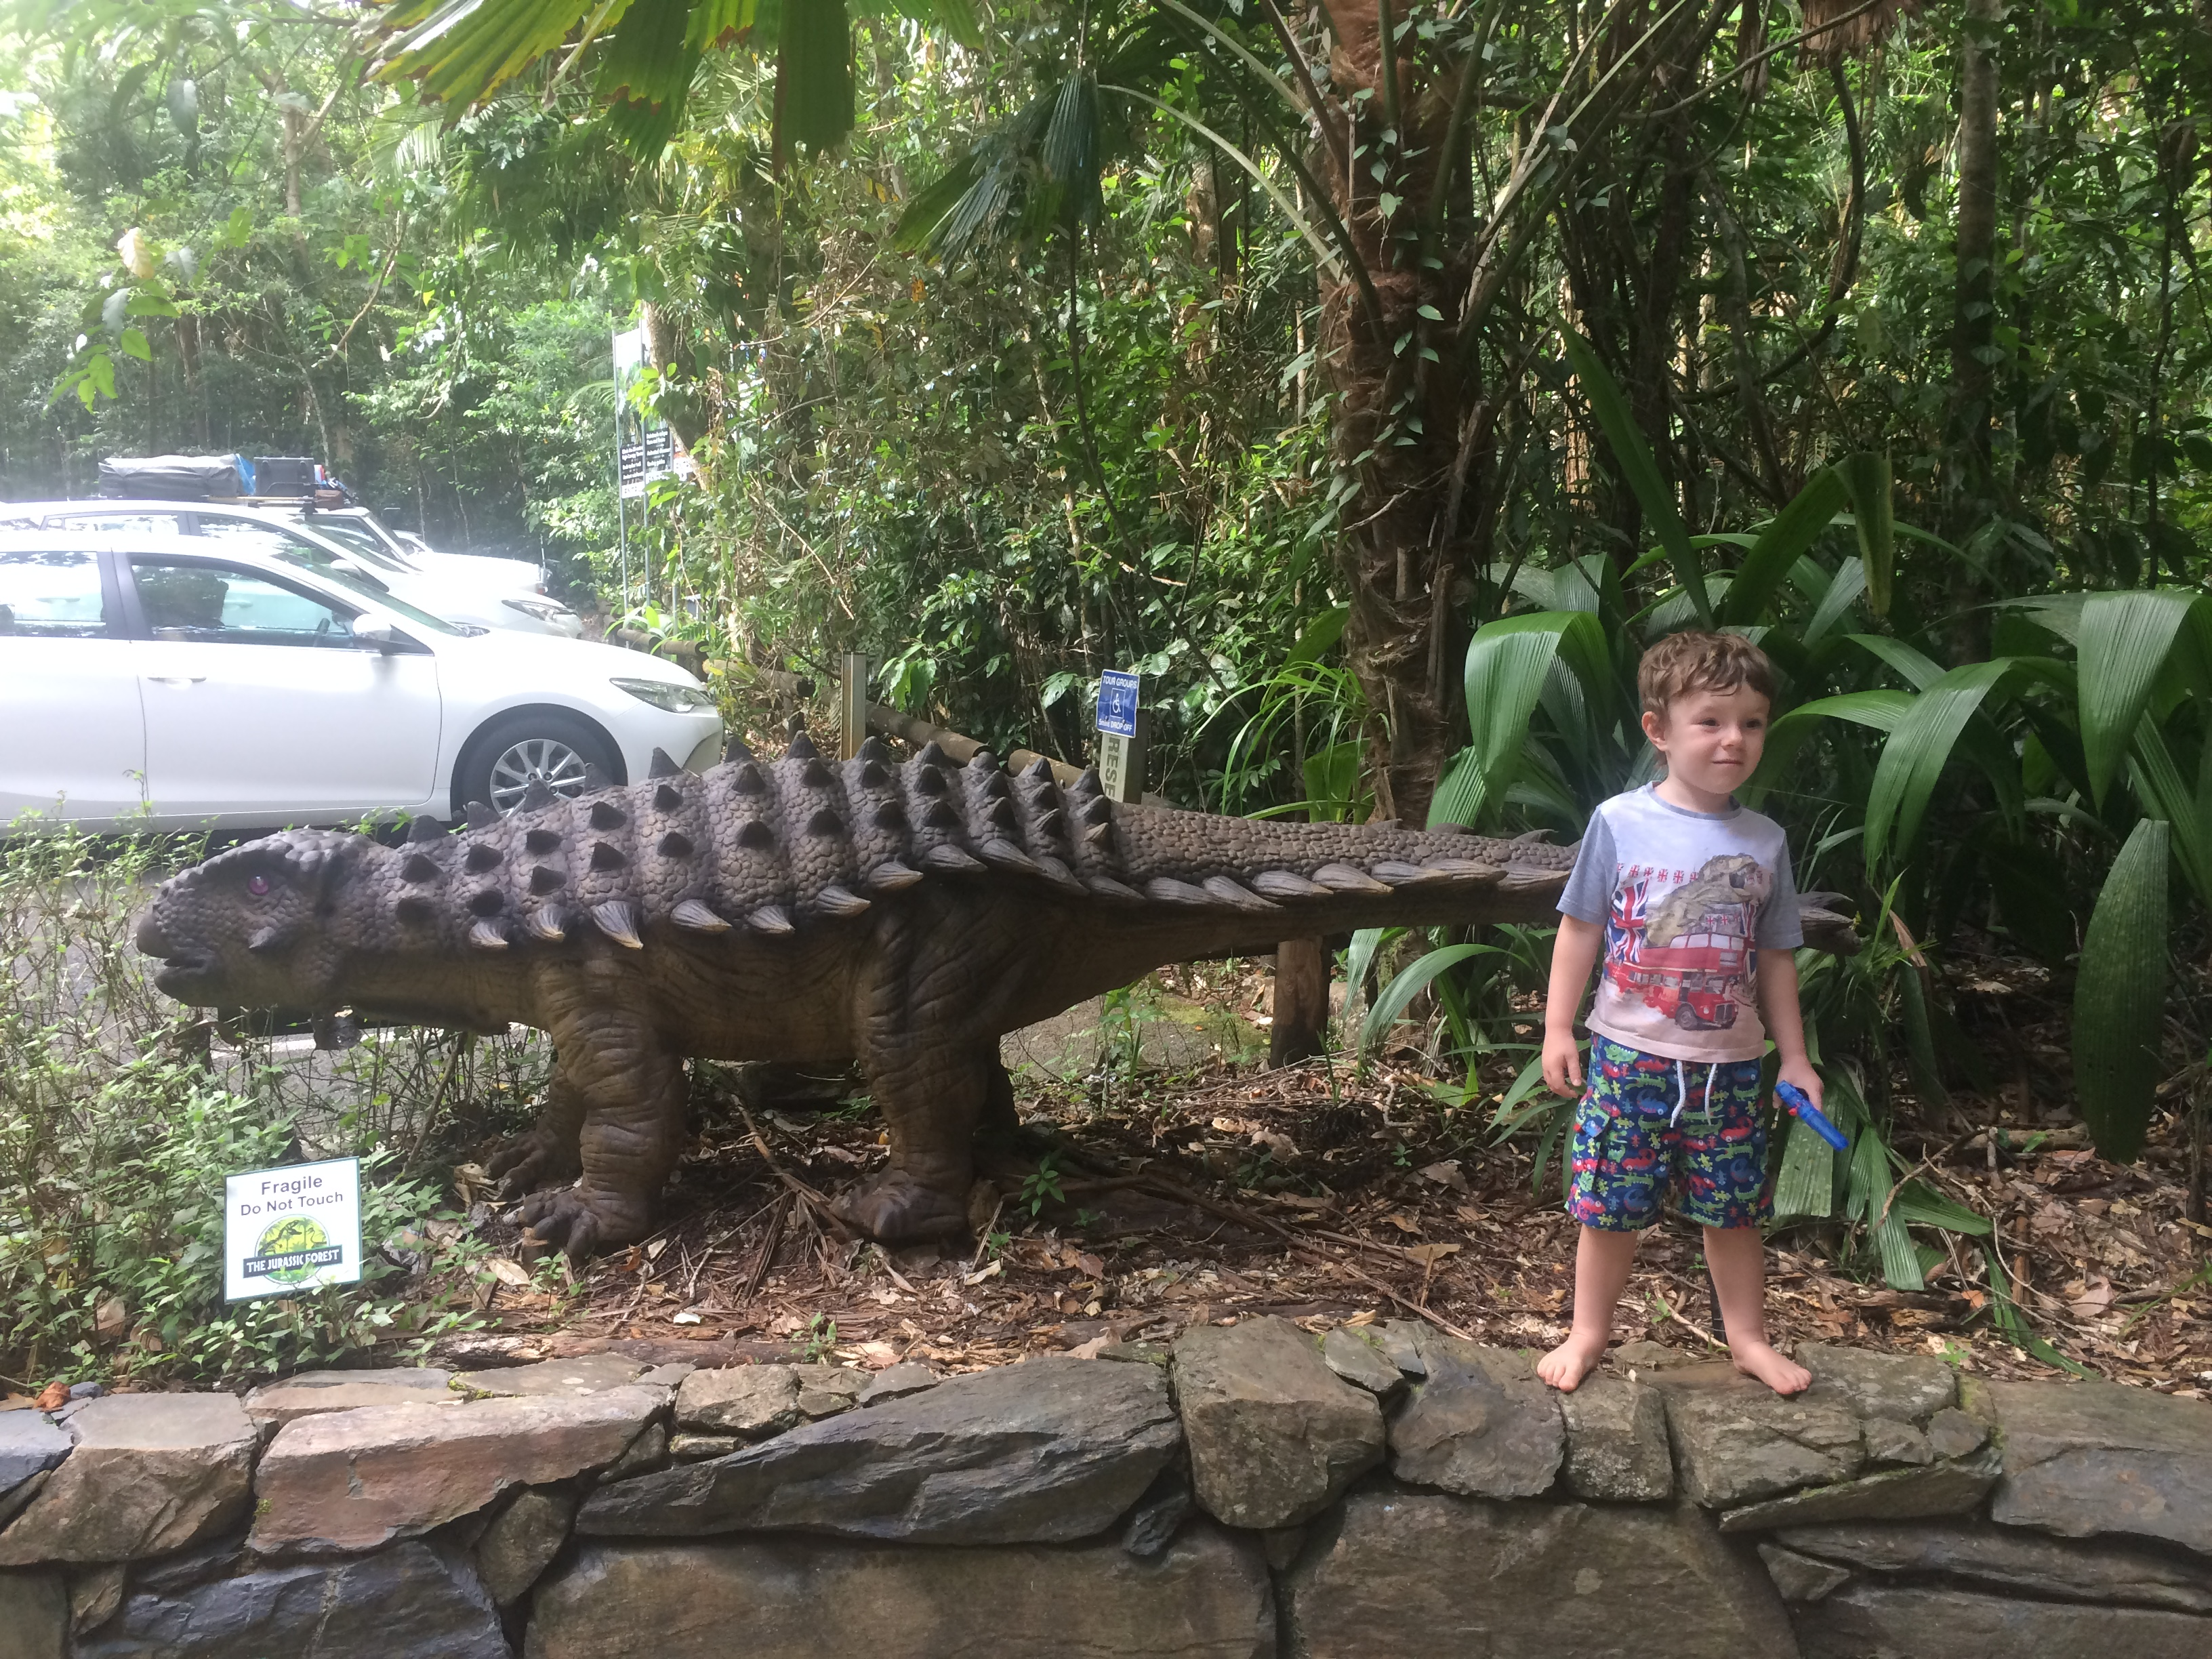 Daintree, Discovery and the Demon Duck of Doom